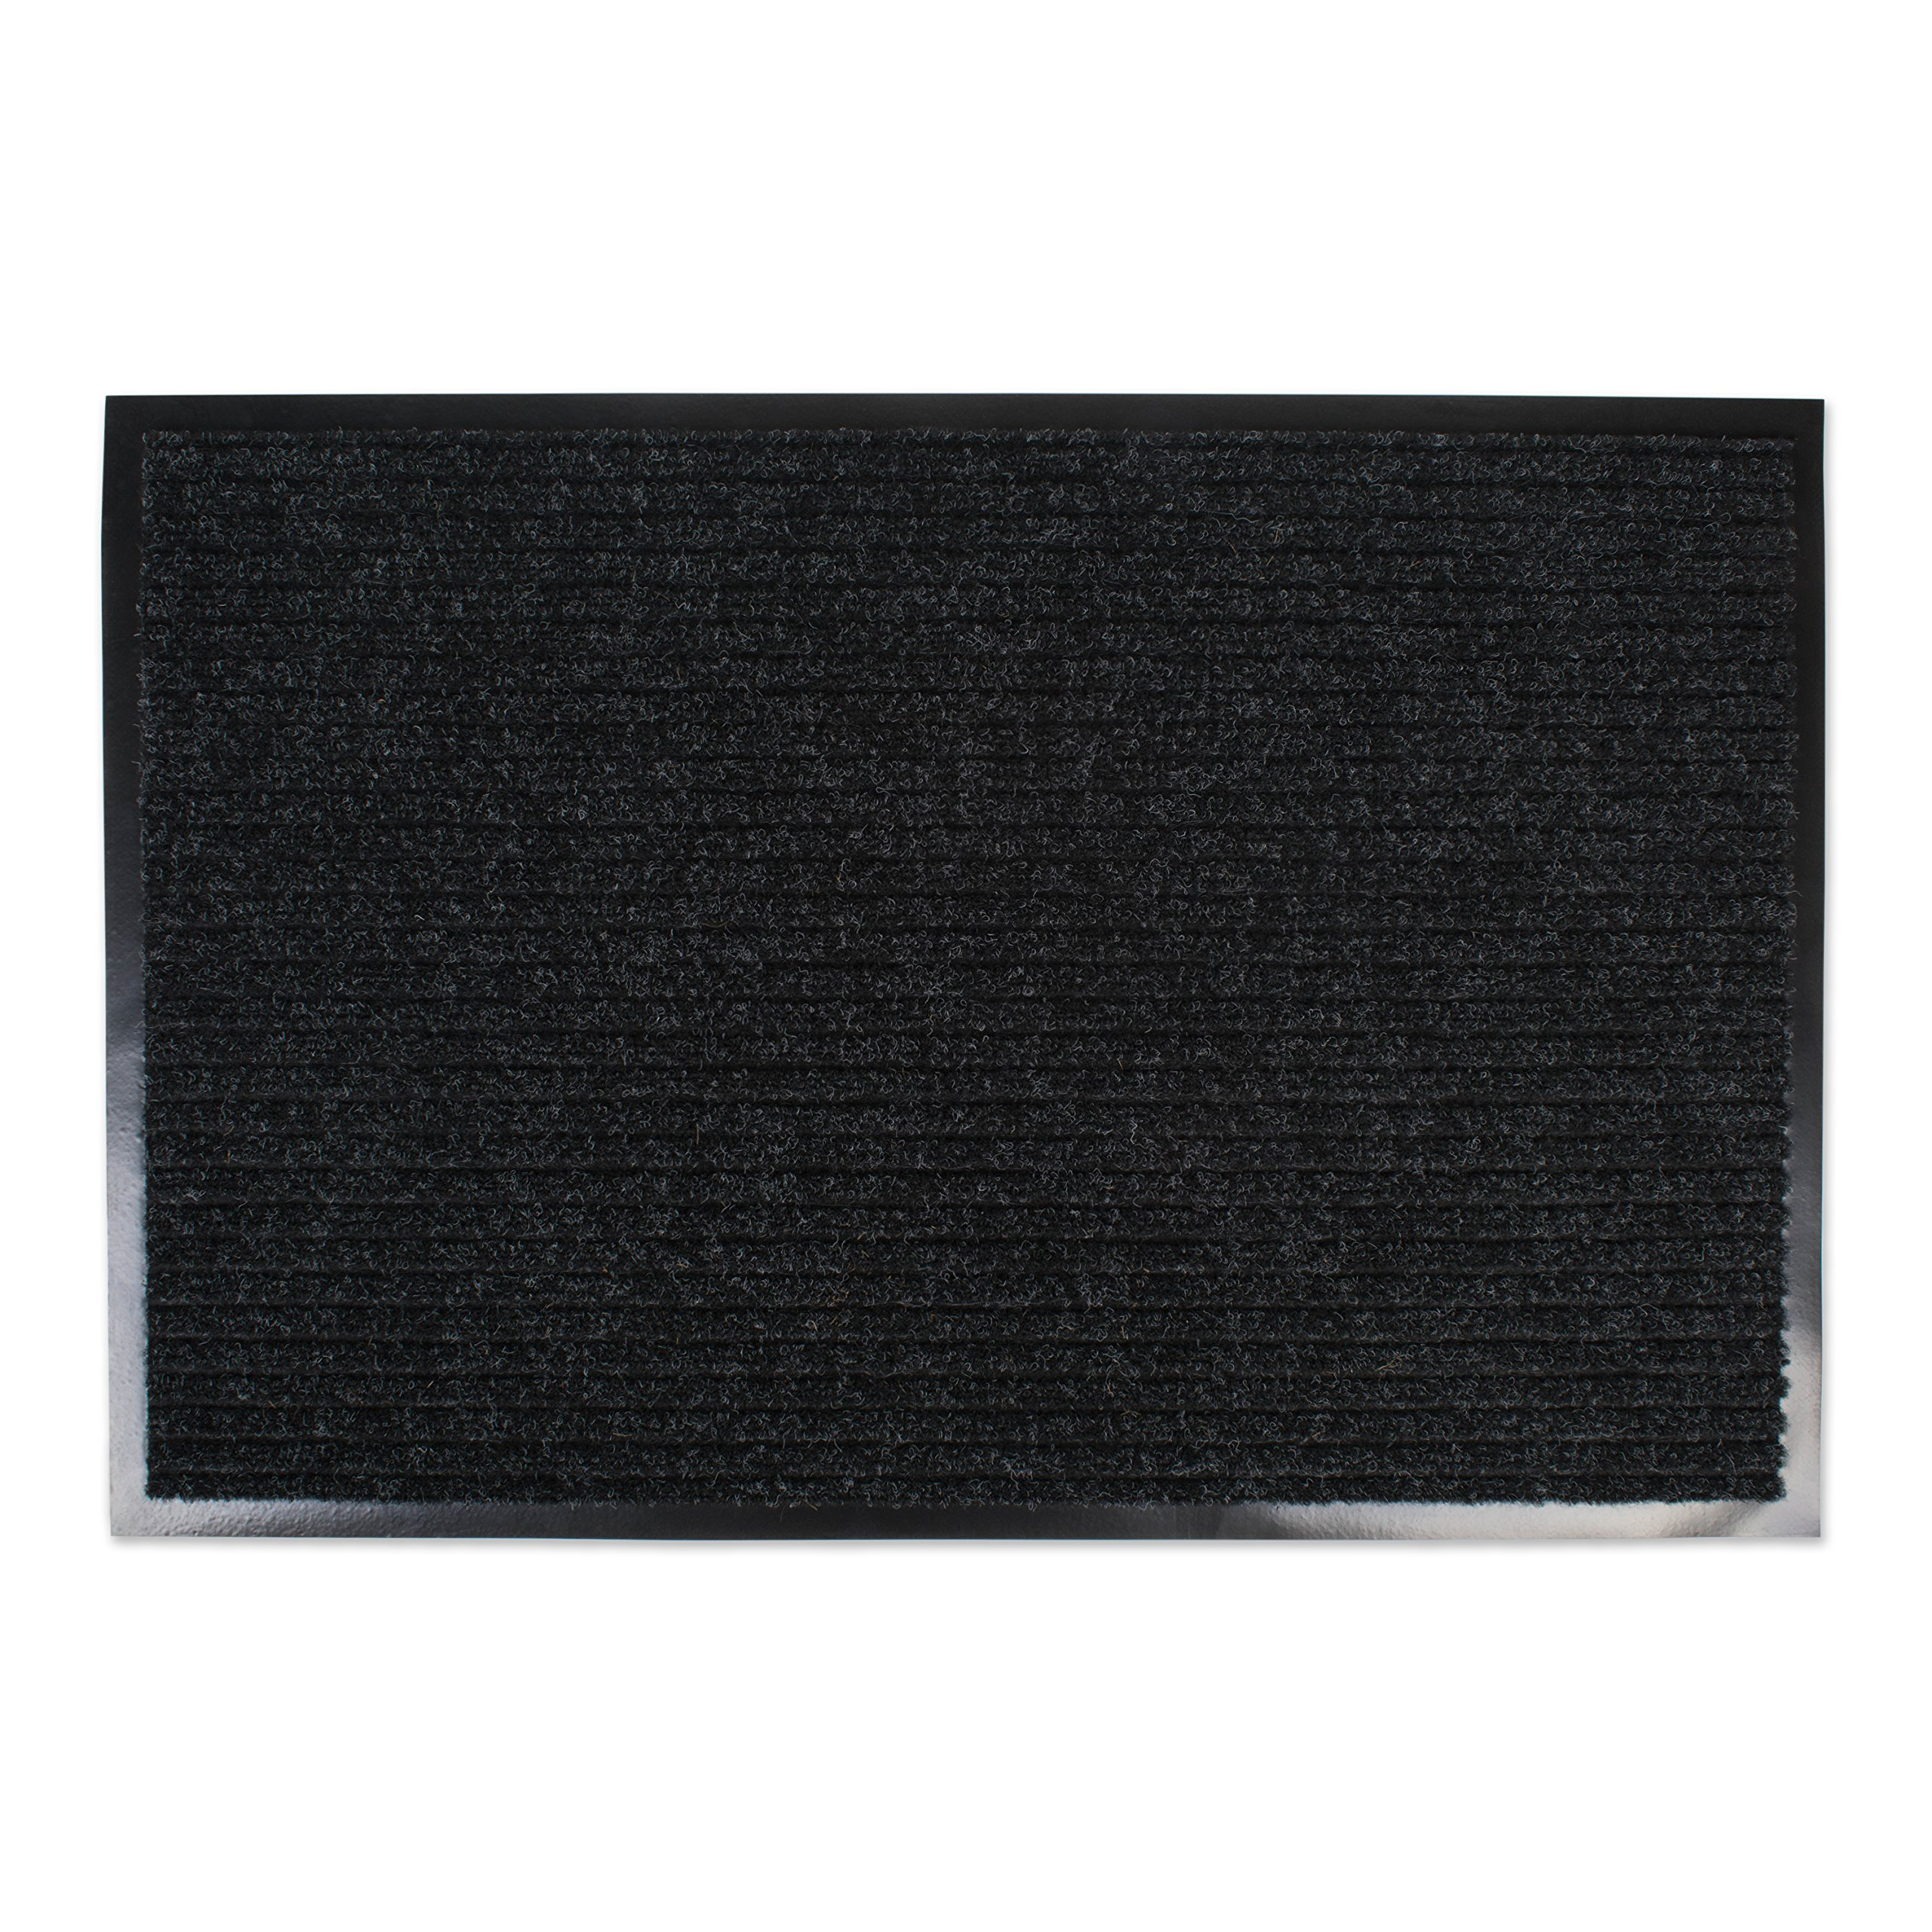 J&M Home Fashions Heavy Duty, Waterproof Ribbed Utility Doormat (24x36 - Charcoal Black) Entry Way Shoes Scraper for Patio, Garage, or Front Door, Trap Dirt, Debris, Mud Outside